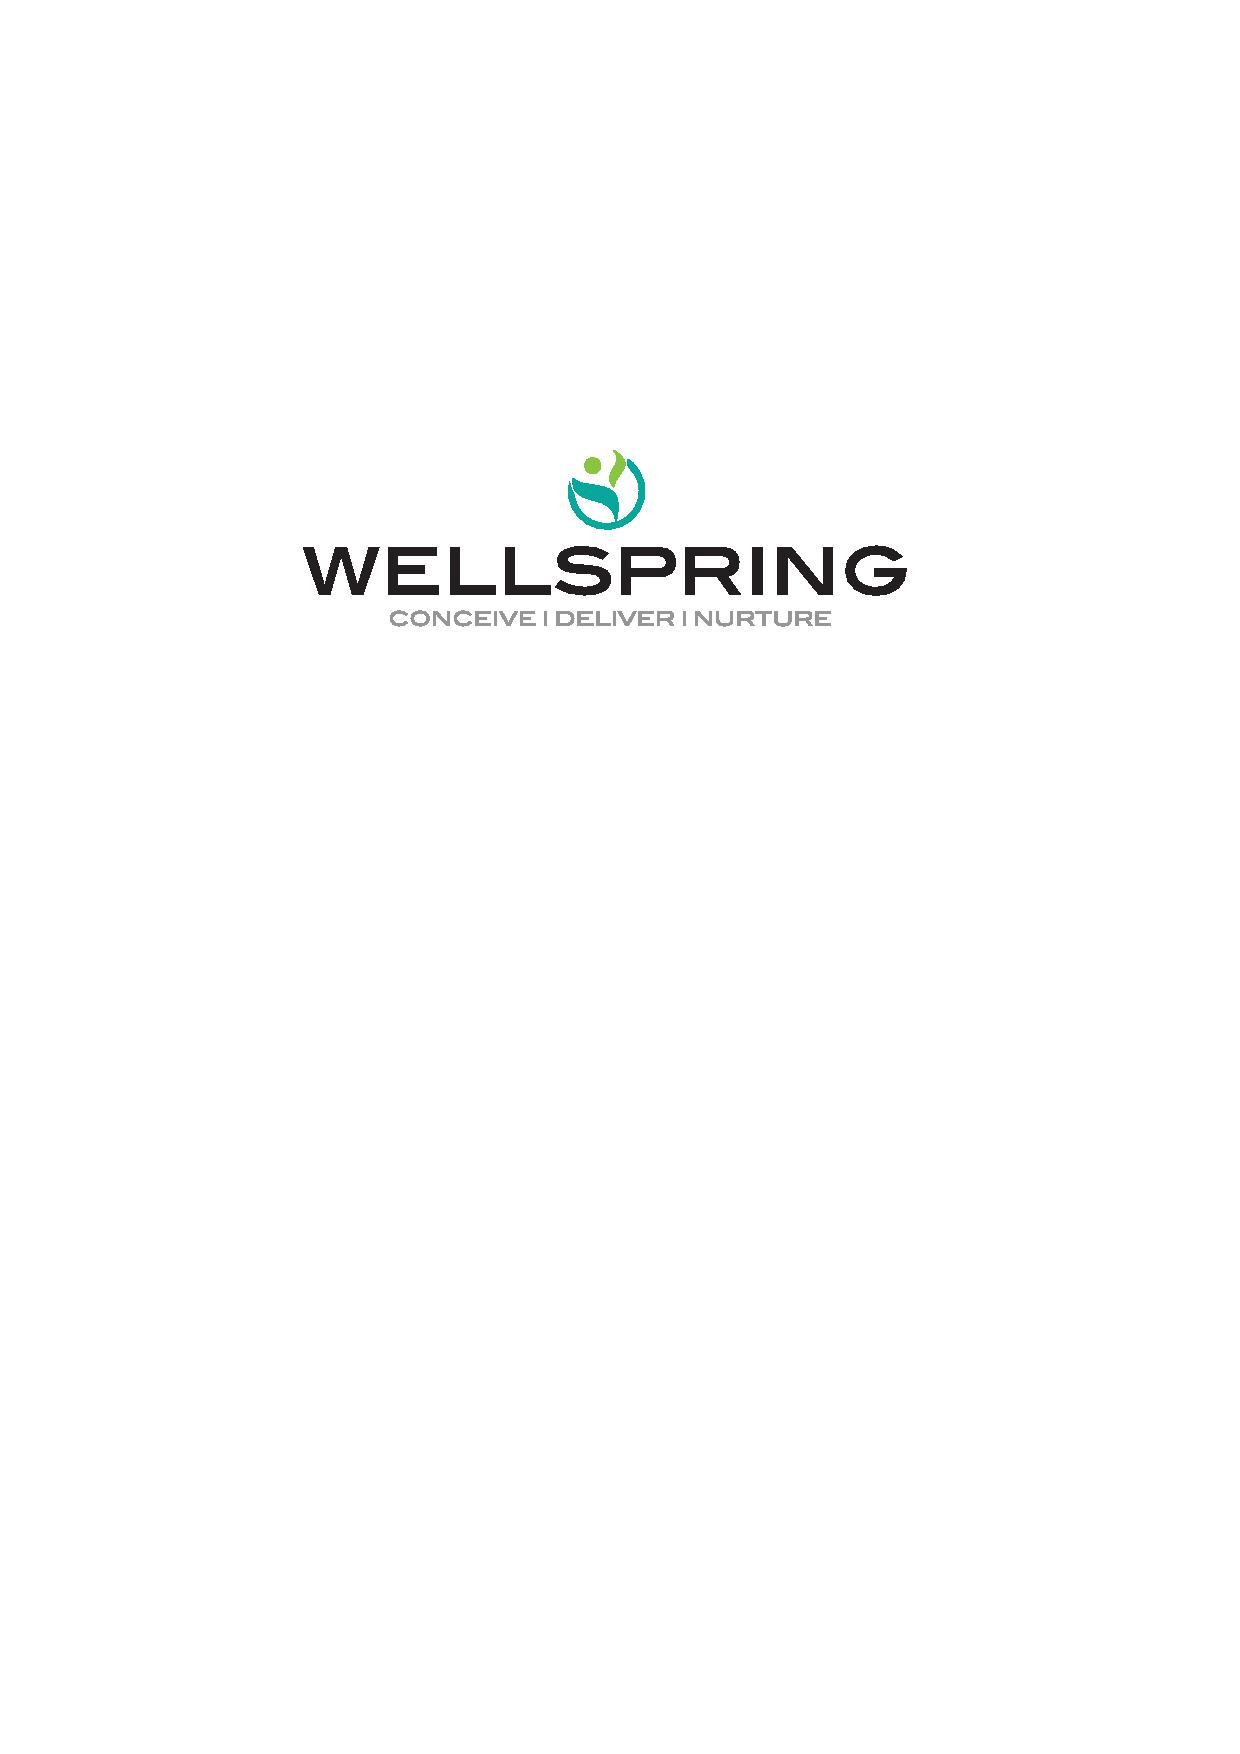 Wellspring Mother & Child Hospital